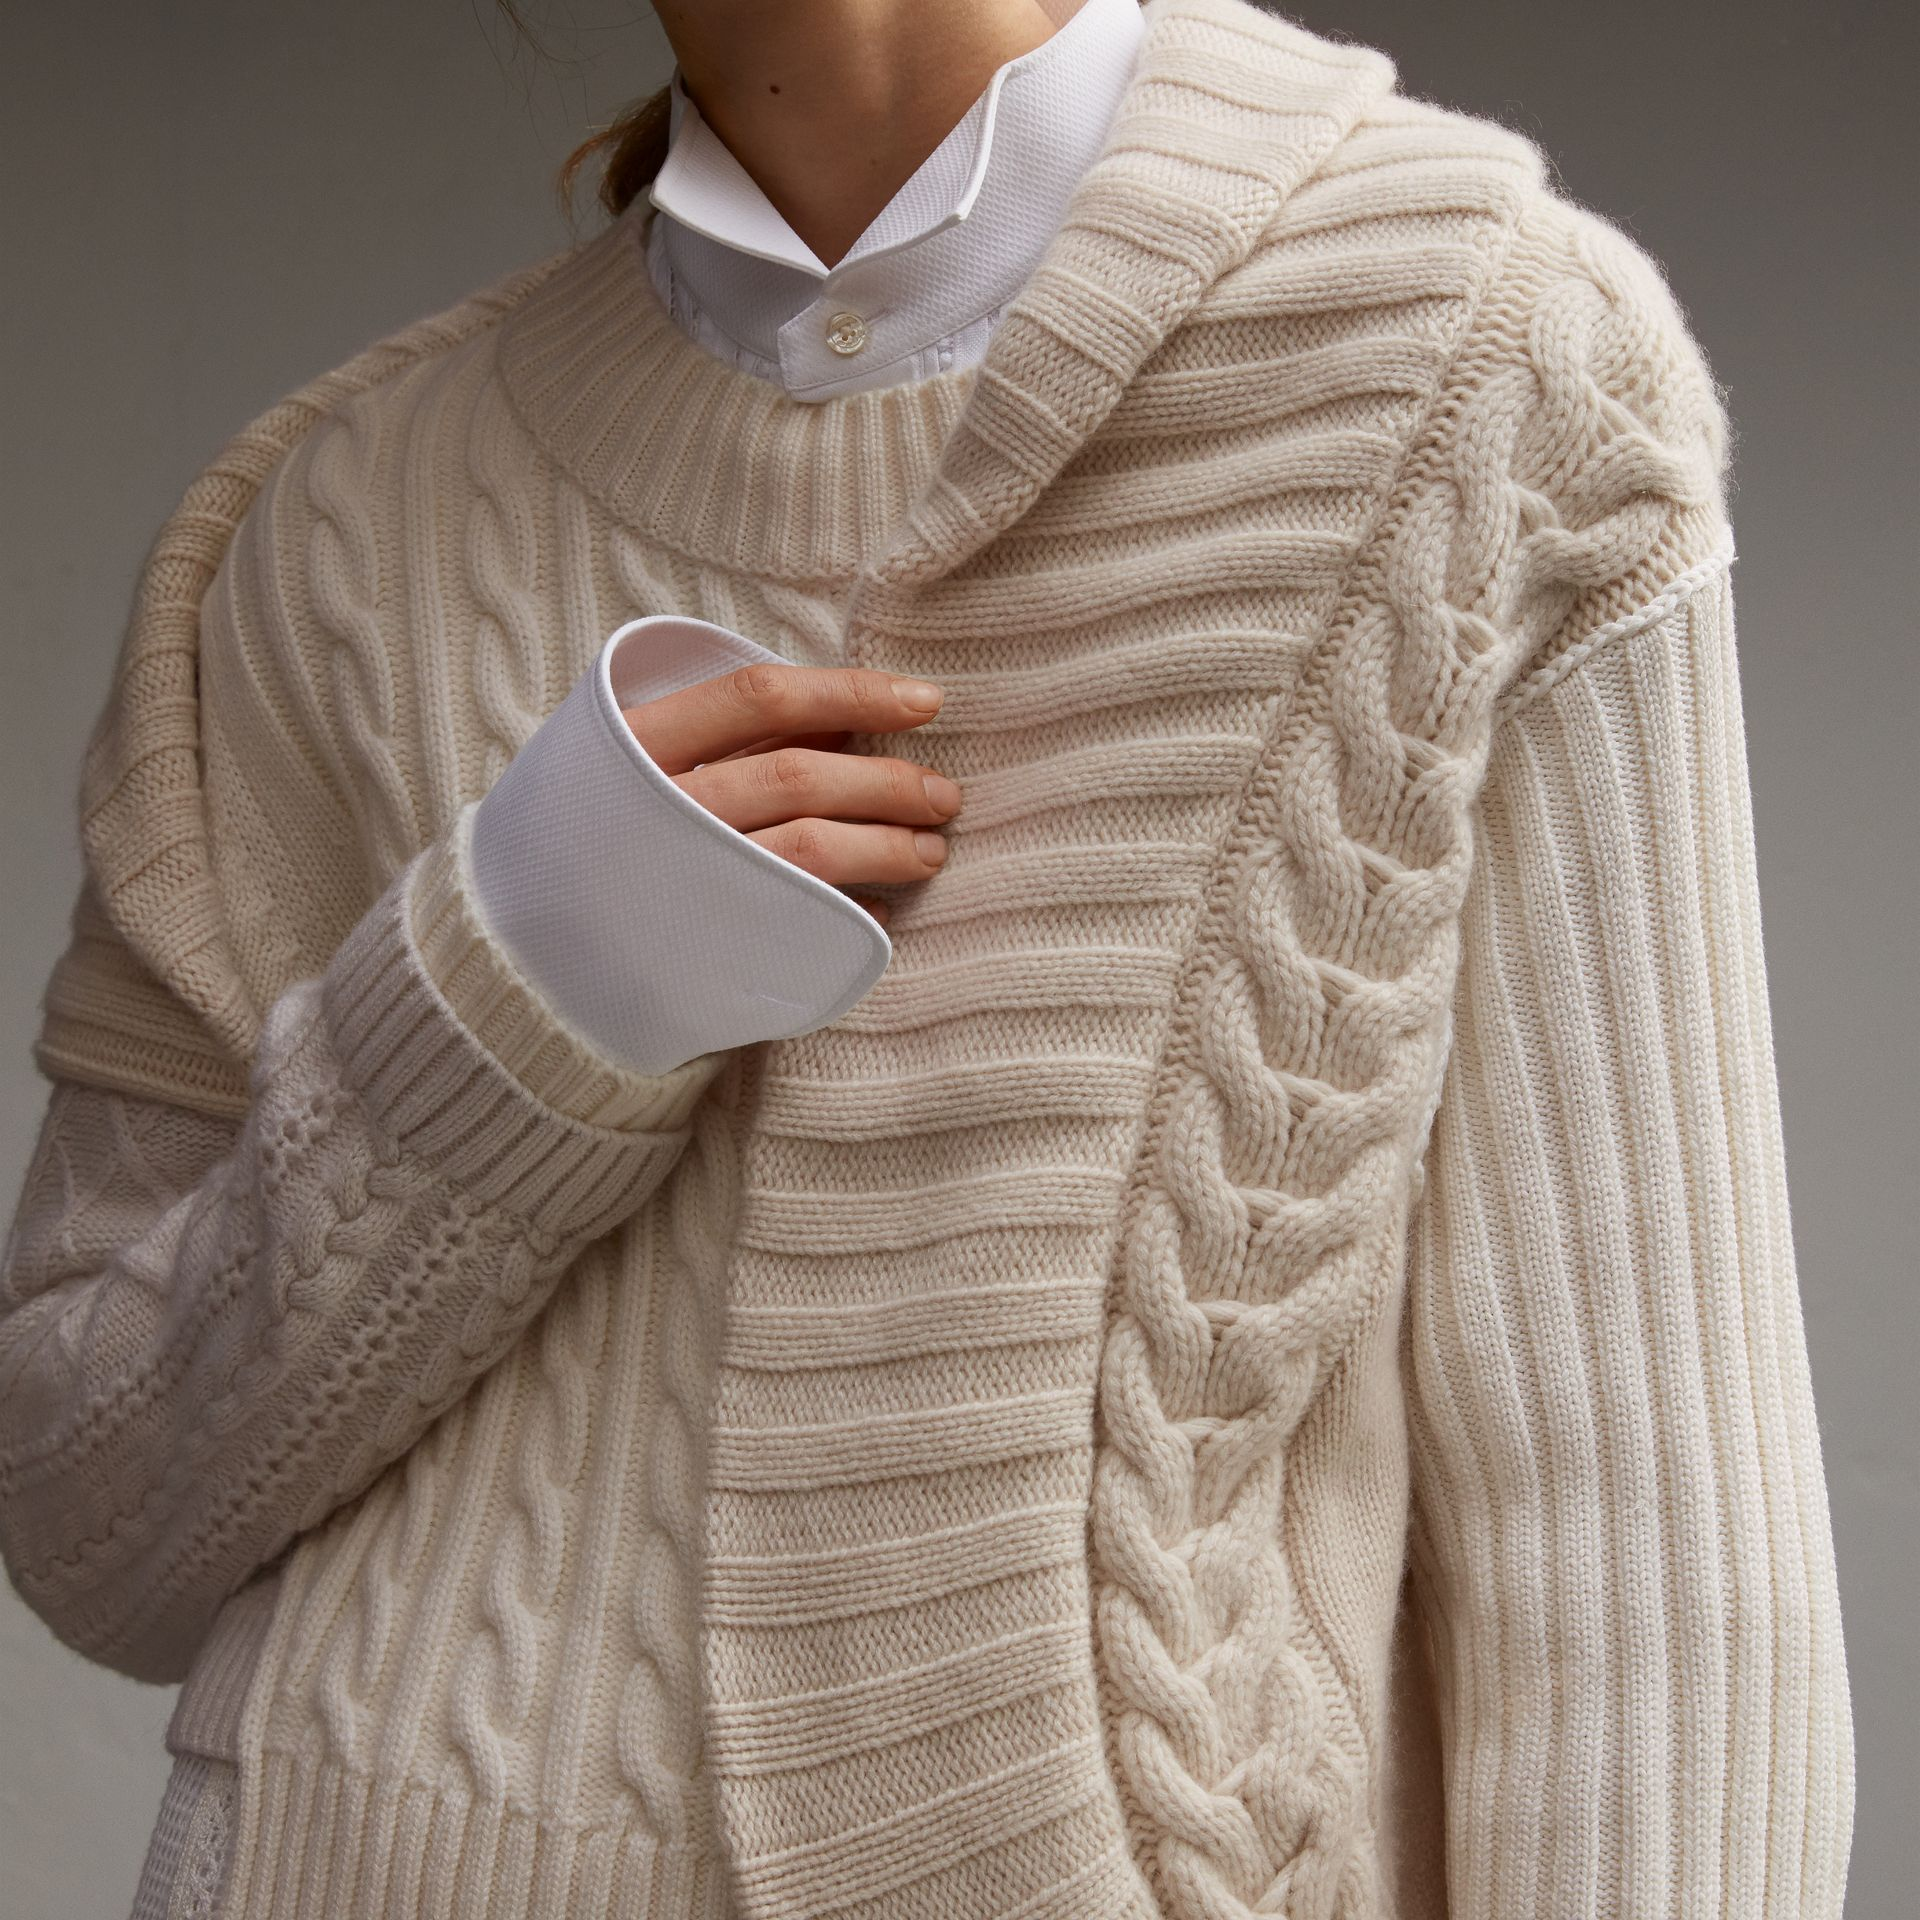 Panelled Cashmere, Cotton and Wool Sweater - Women | Burberry - gallery image 5